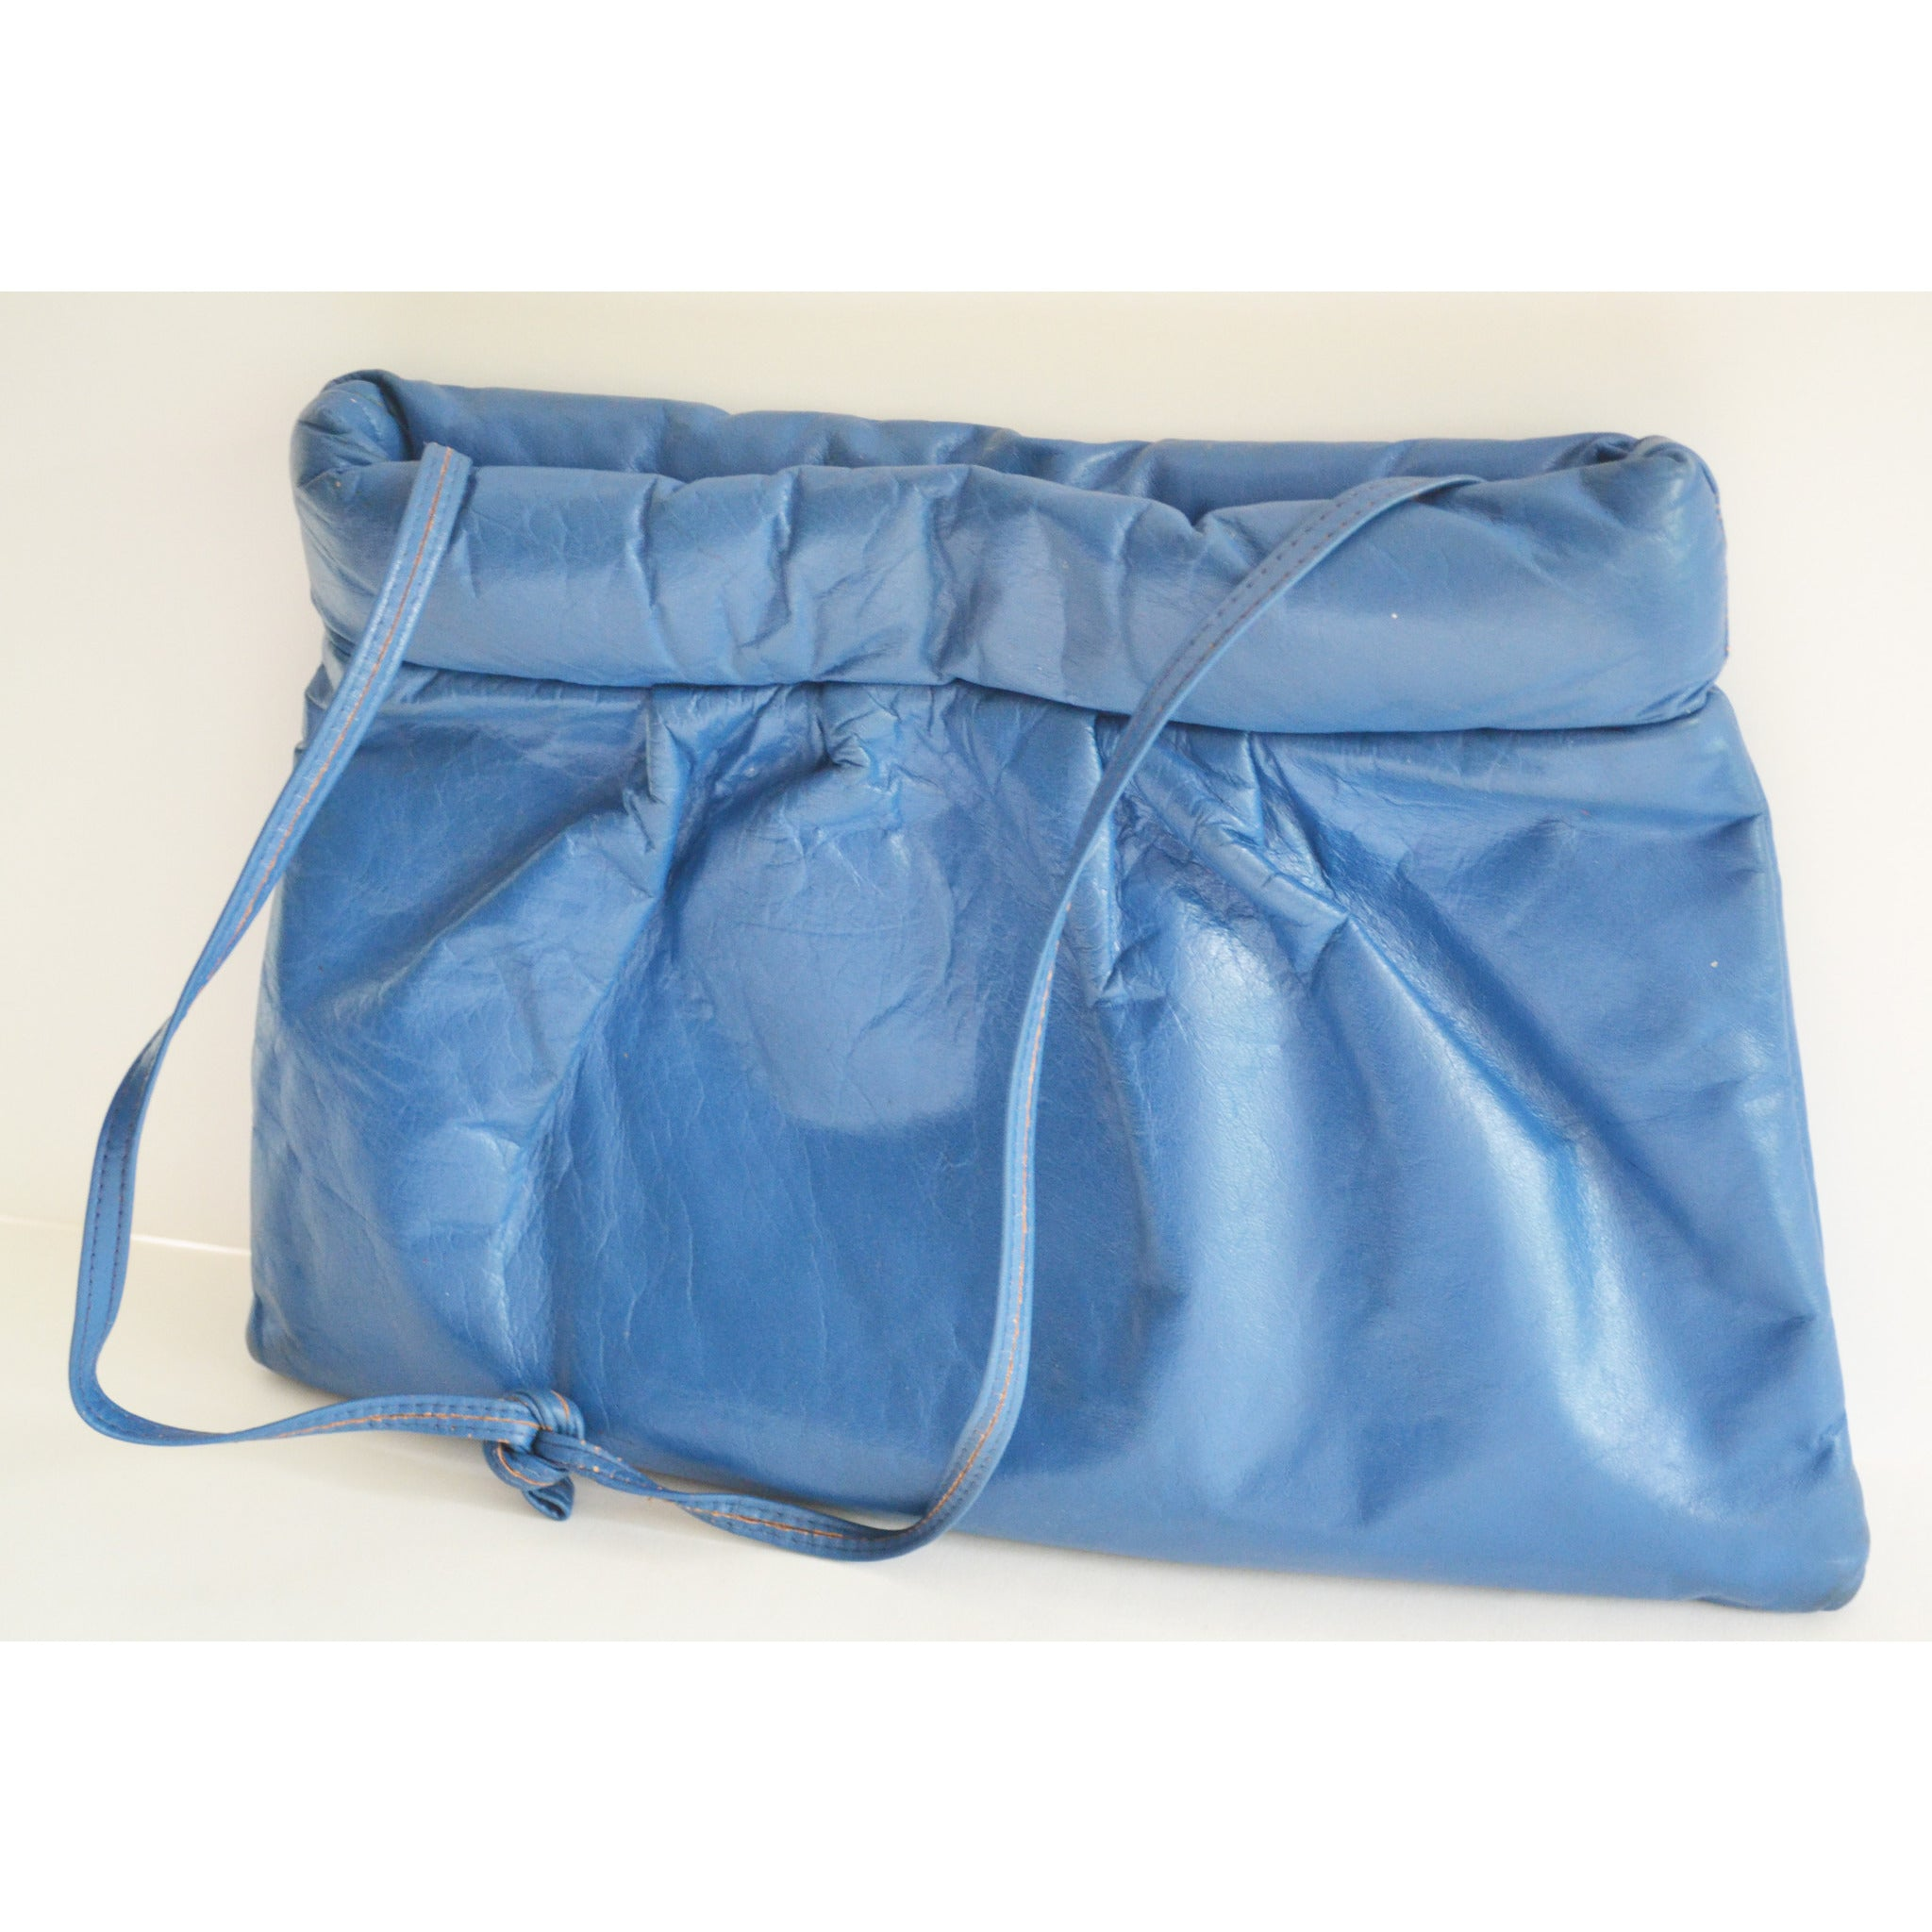 Vintage Blue Pleated Leather Clutch Purse